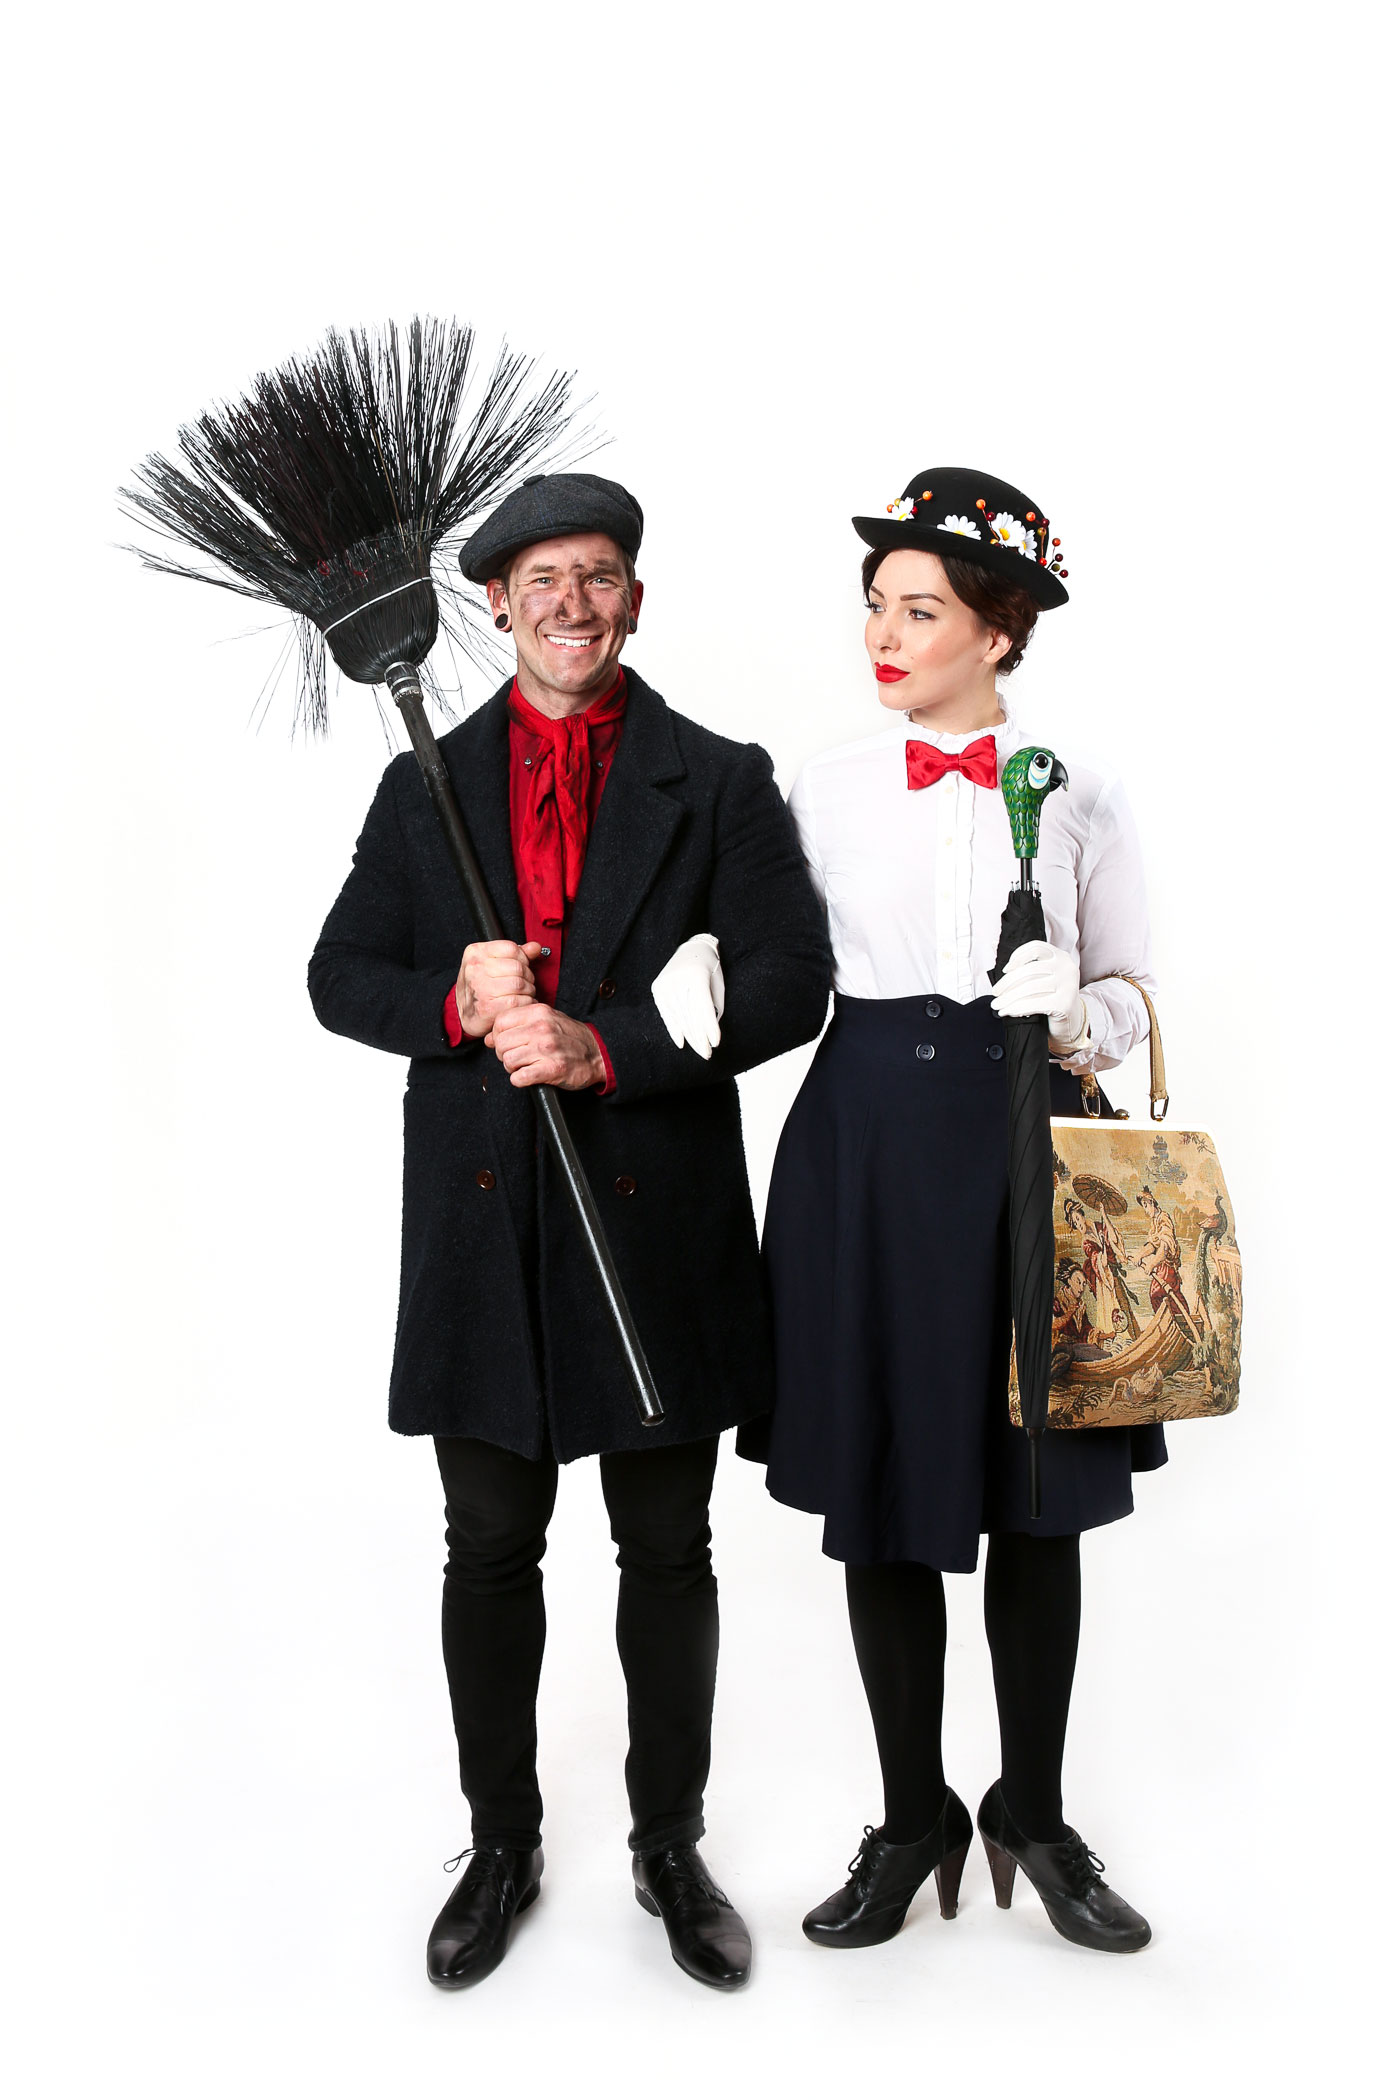 dressing up . Mary Poppins parrot umbrella head ONLY for costume